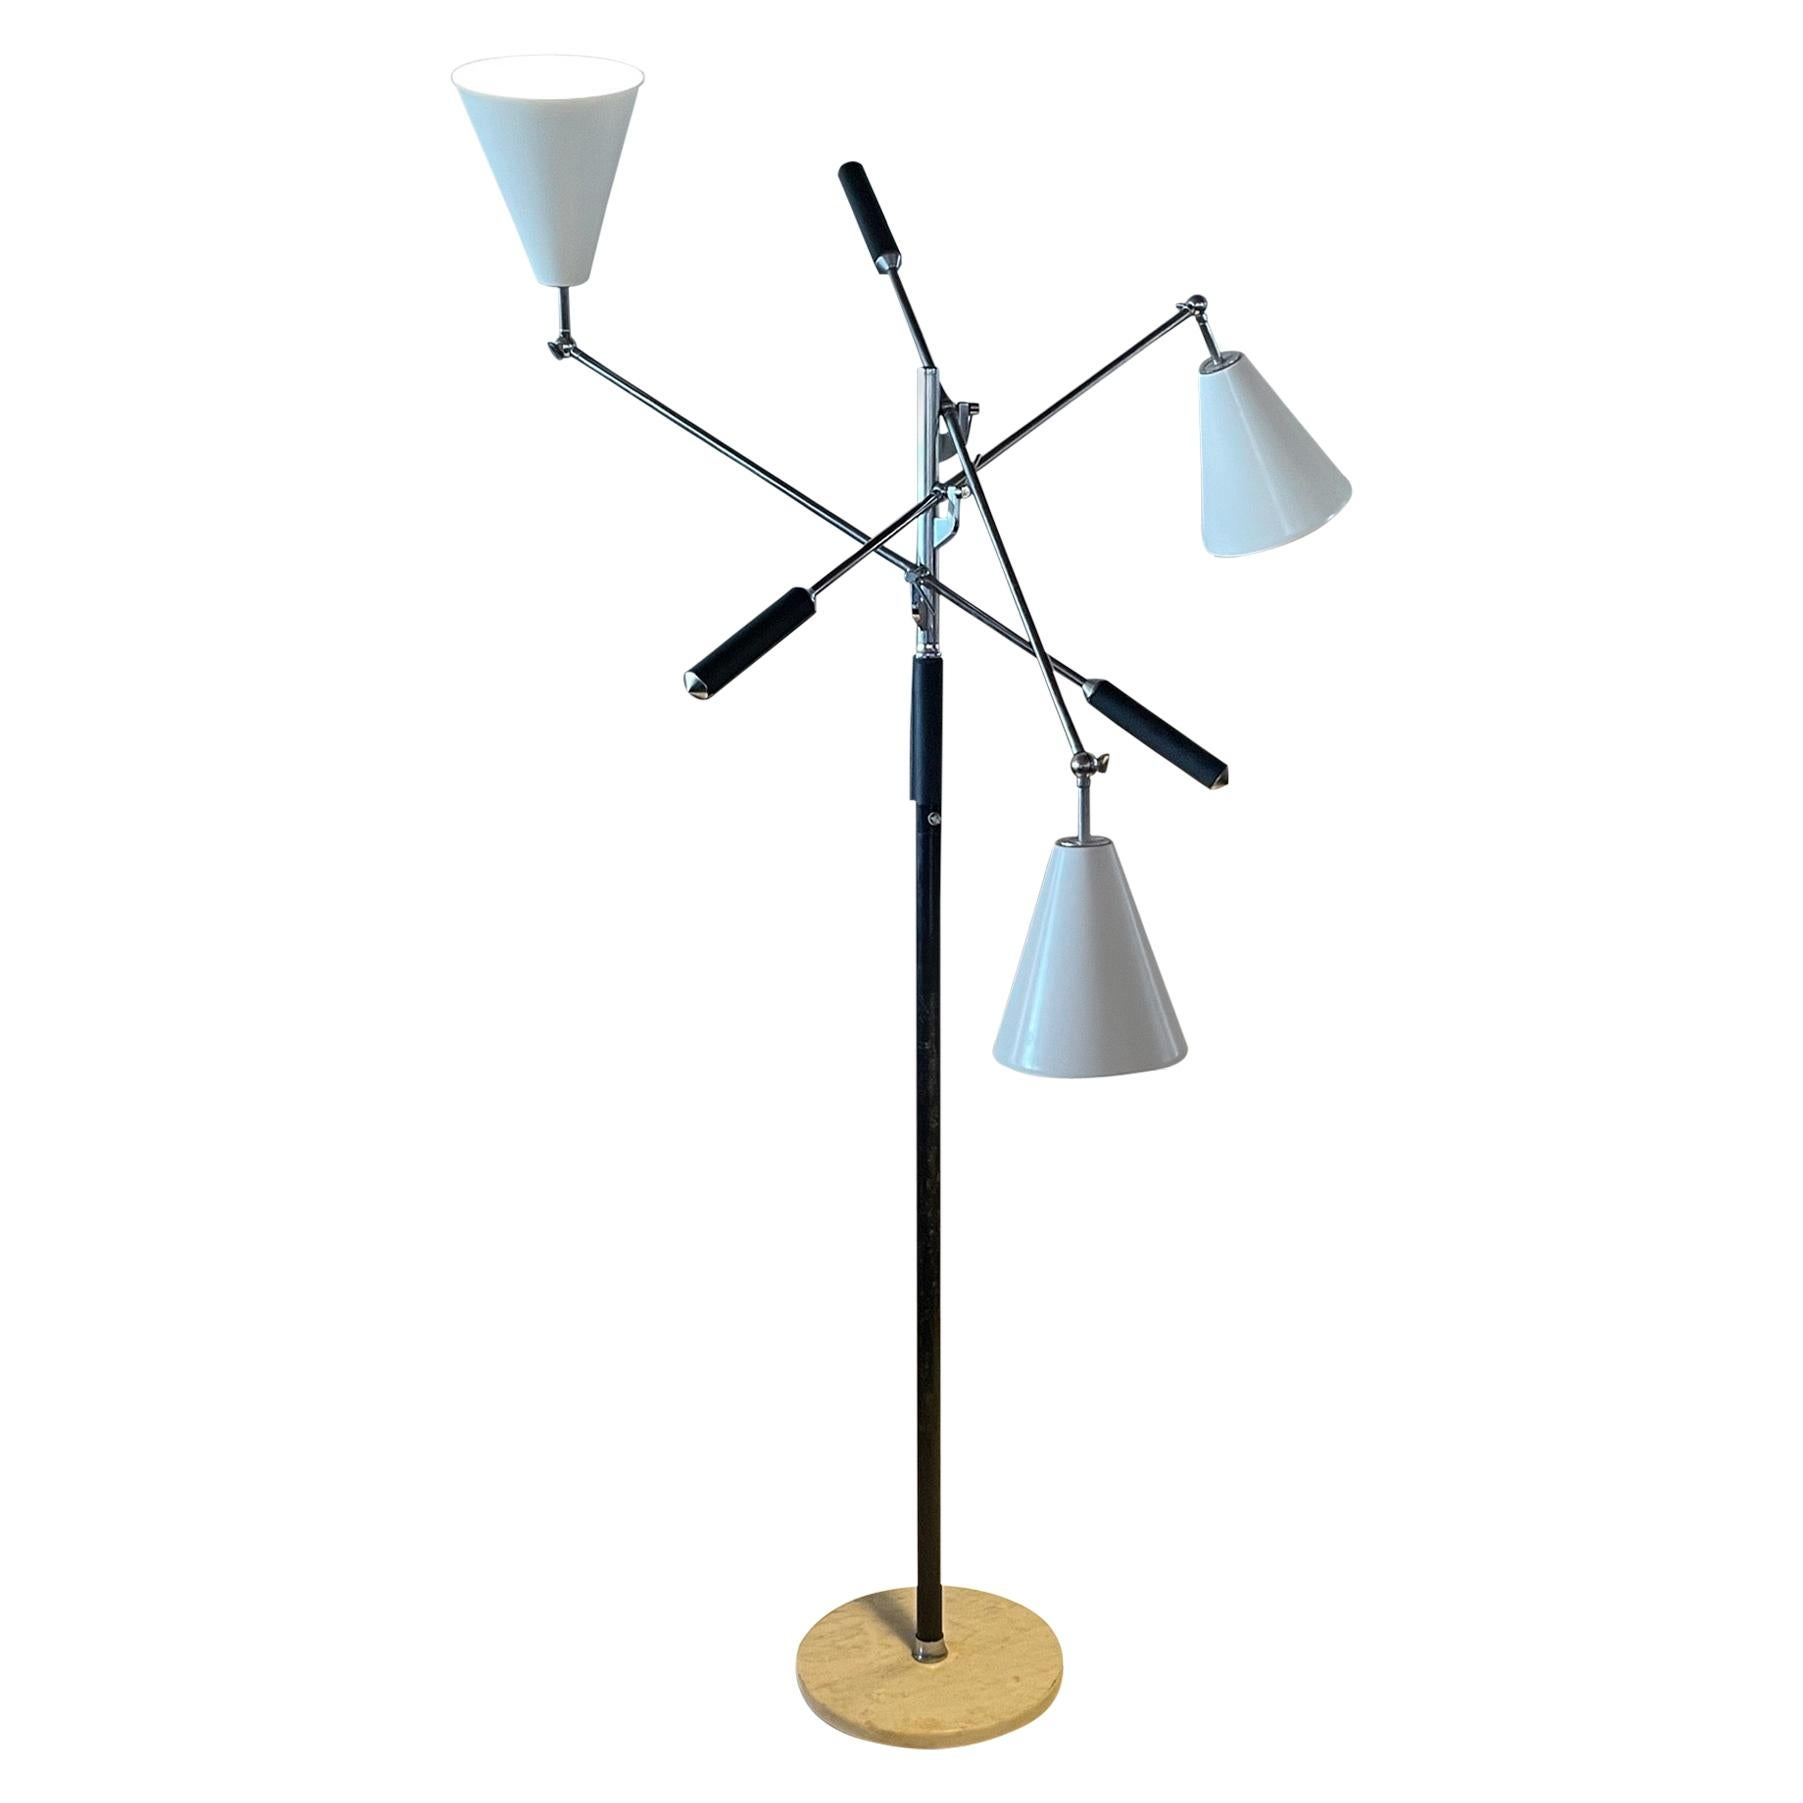 A Classic Triennale Floor Lamp Made in Italy